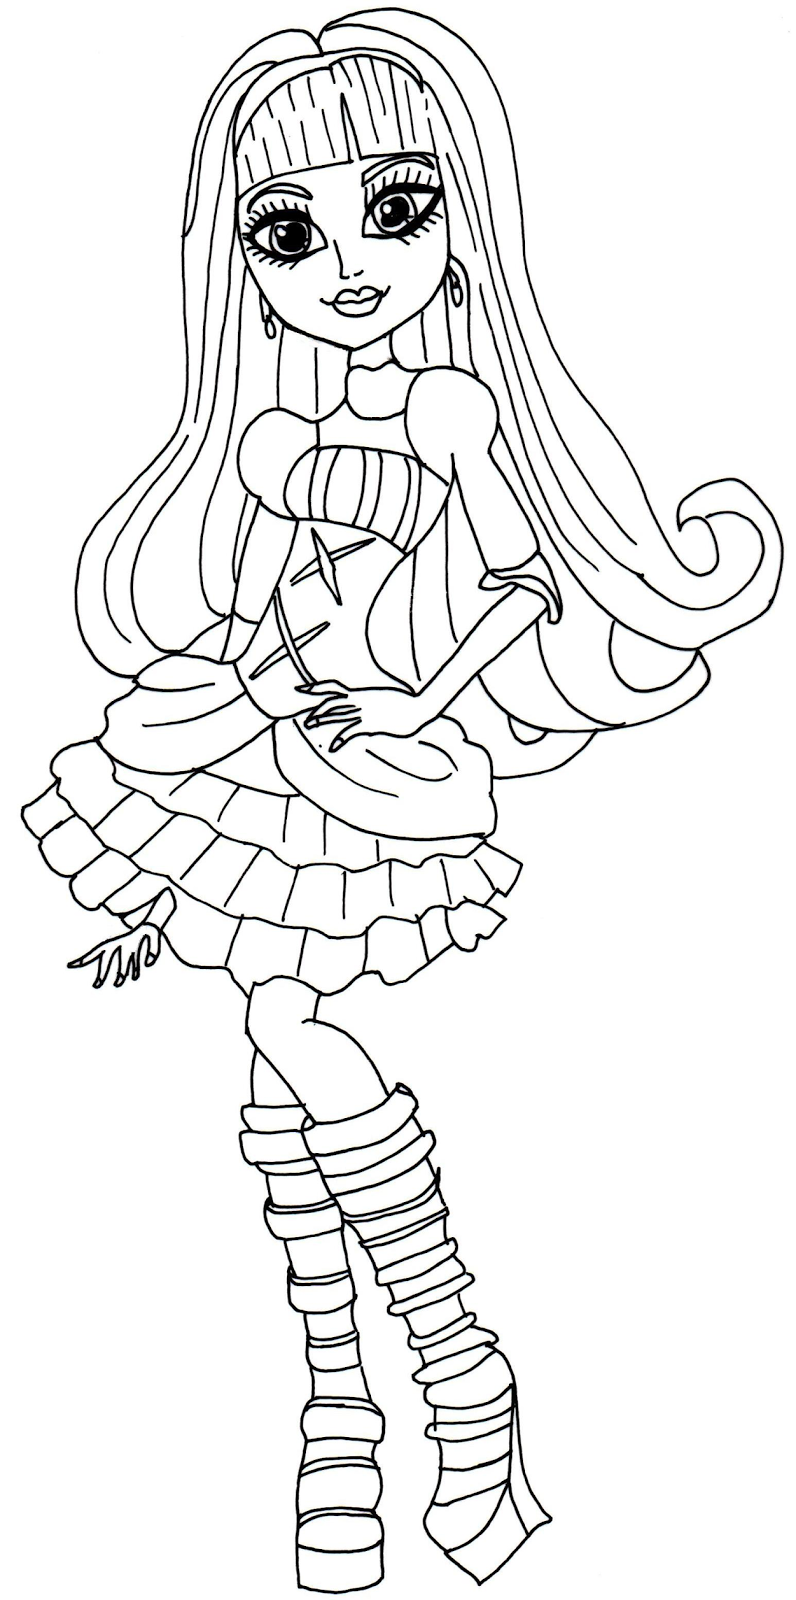 Free Printable Monster High Coloring Pages December 2013 High Coloring Pages Free